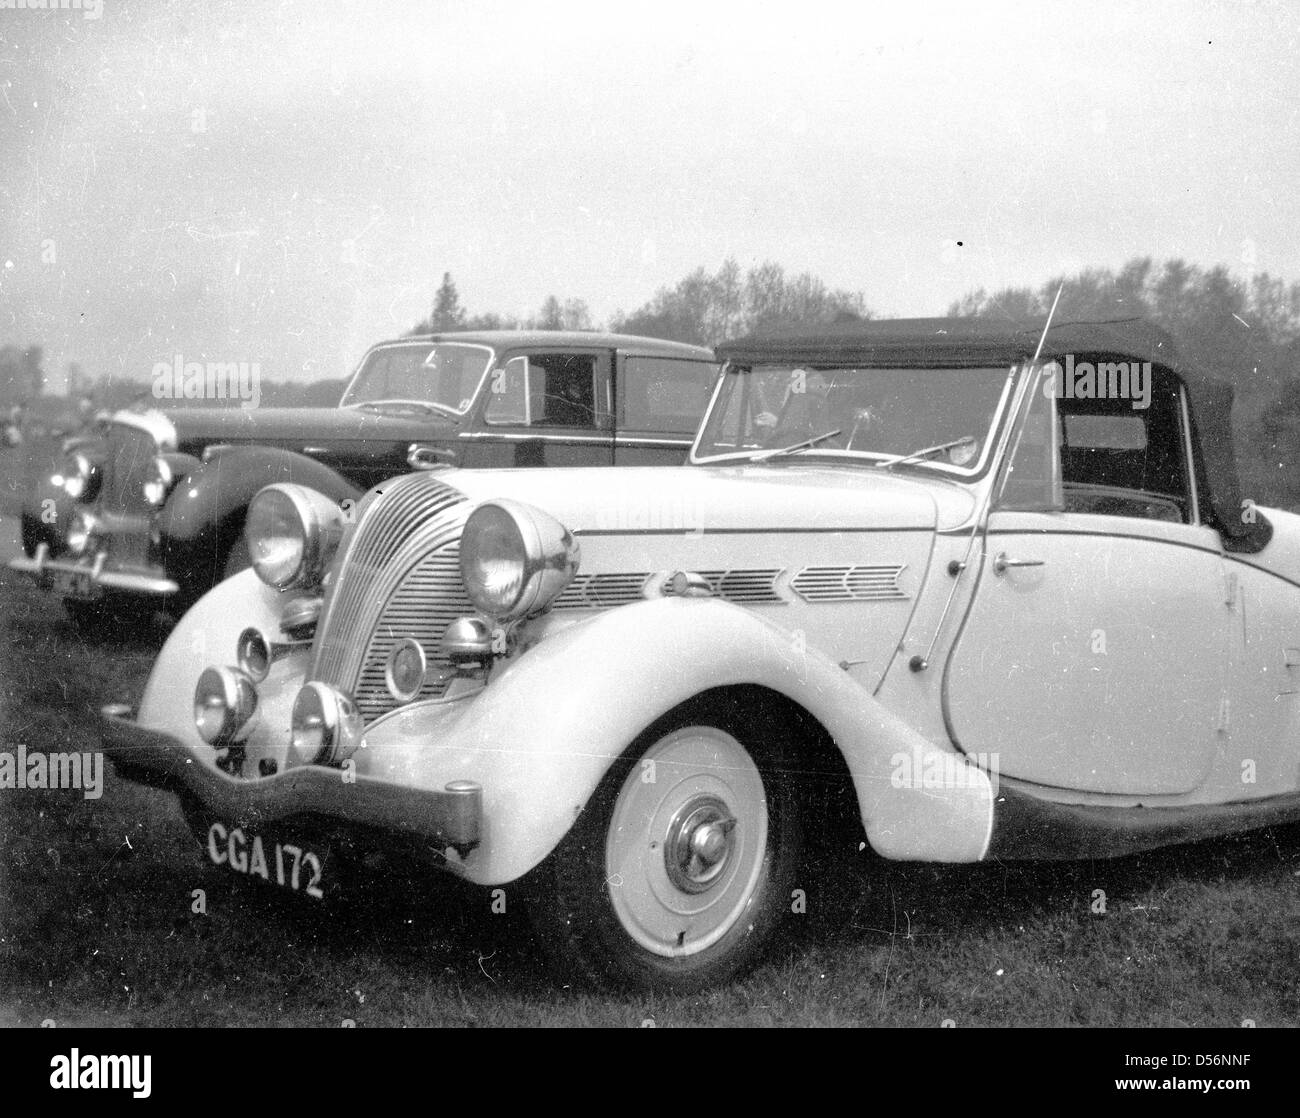 Historical 1950s. England. Two cars from this era parked beside each other in a field. - Stock Image